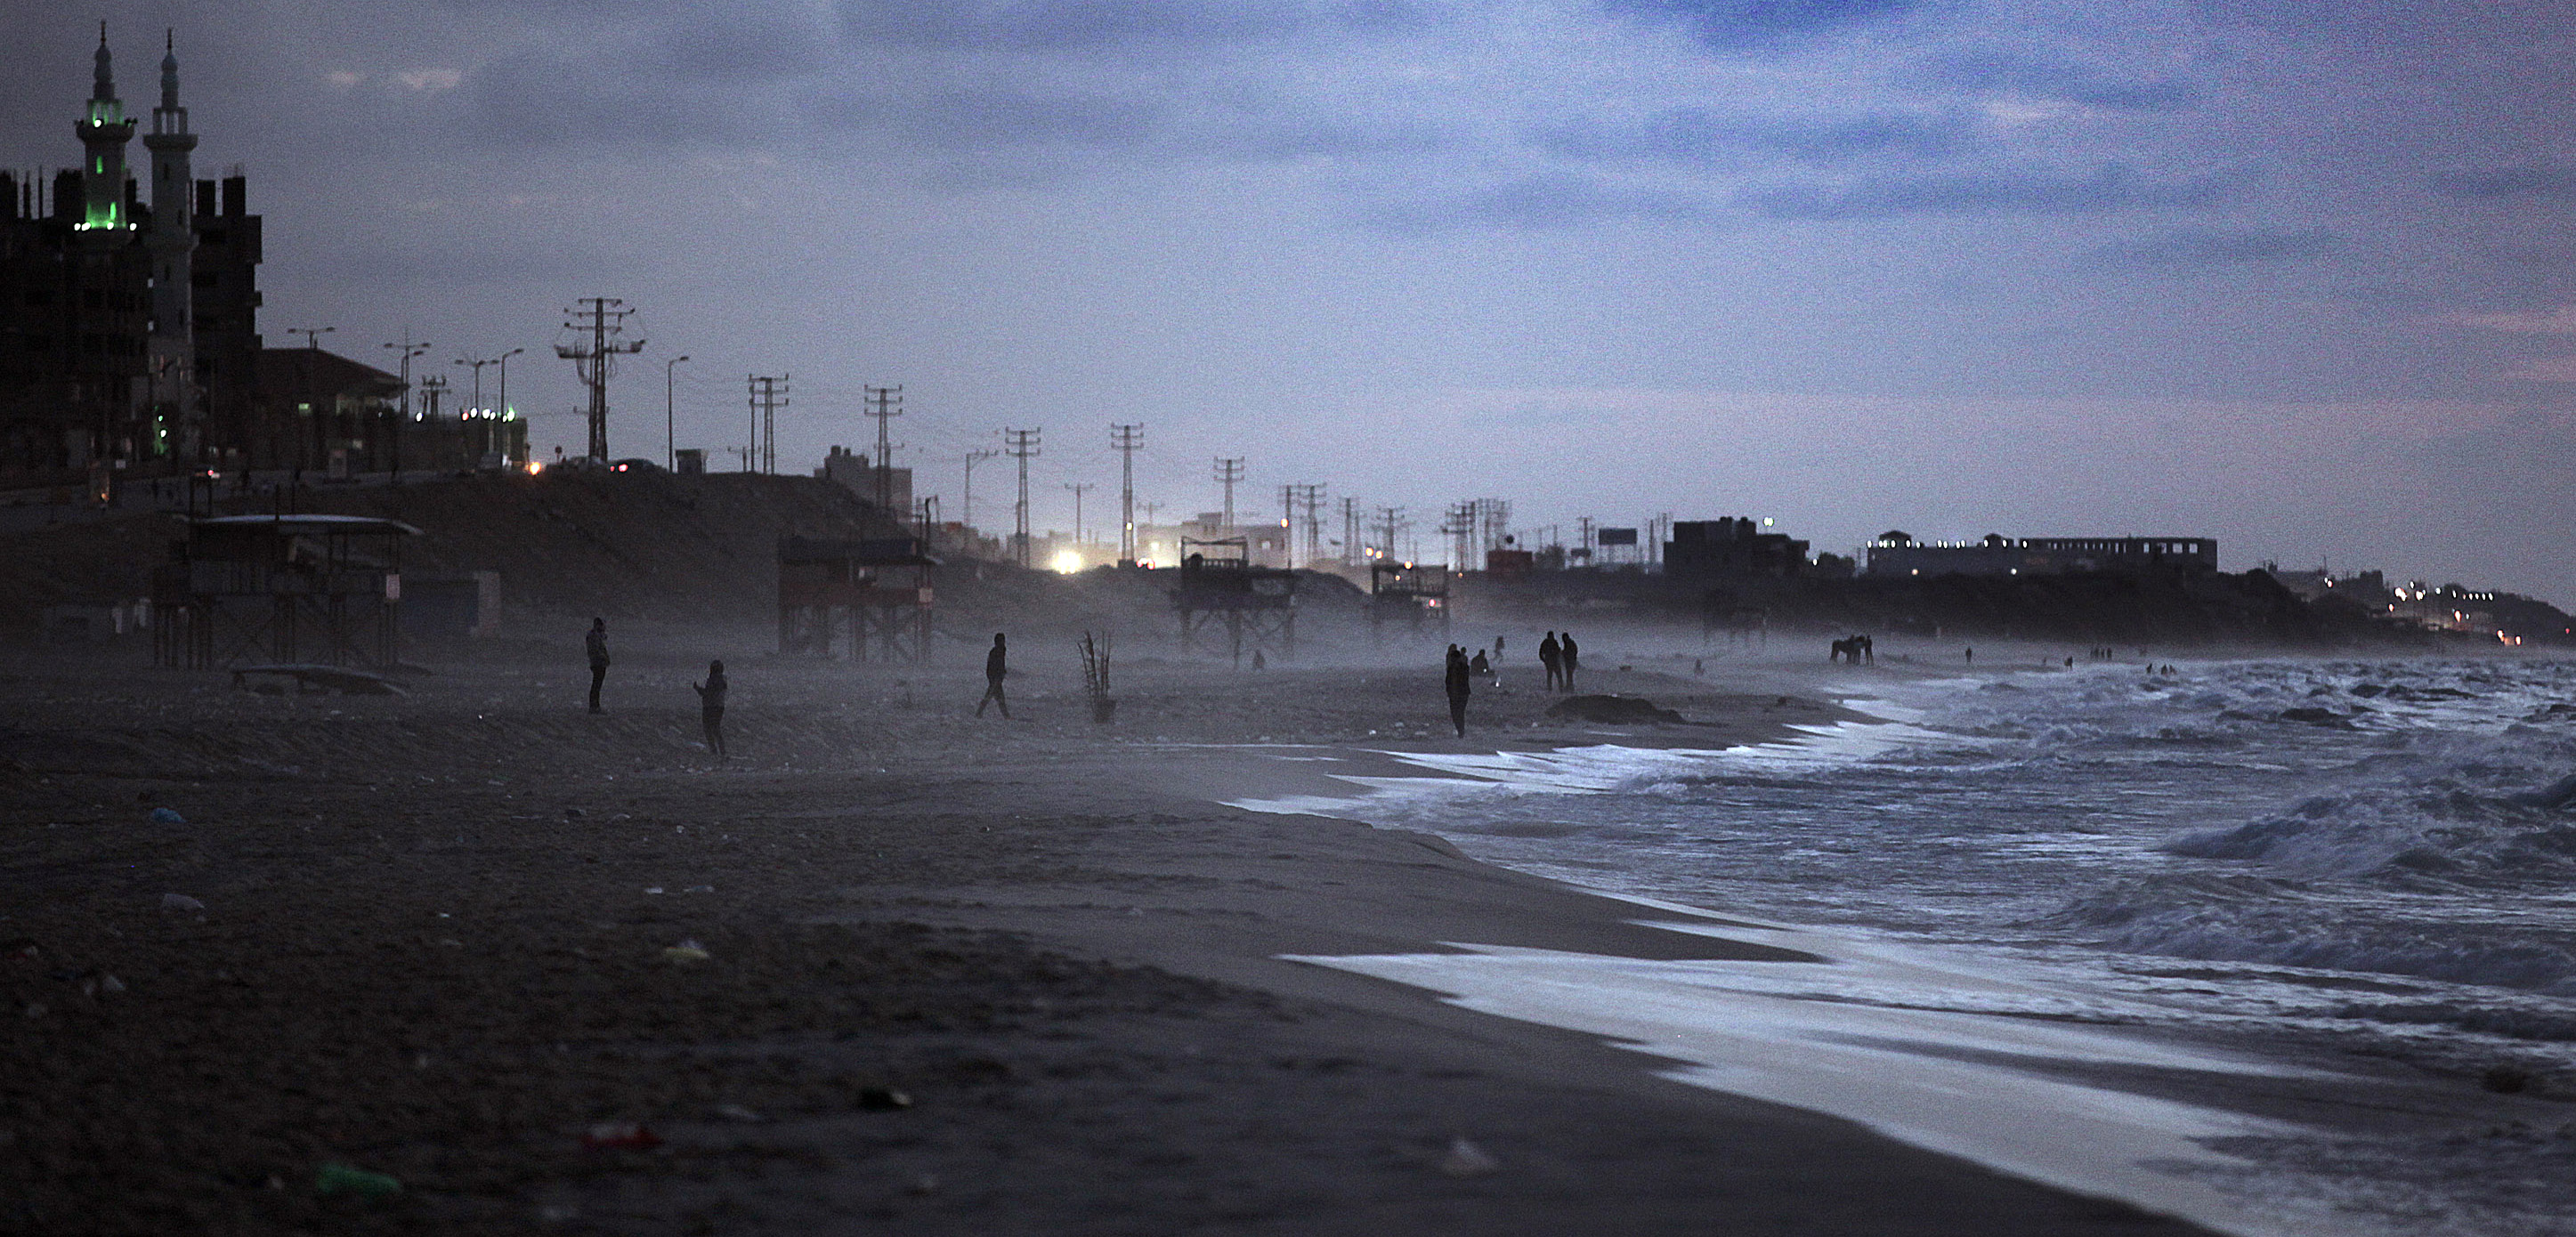 Palestinians stroll along a Gaza Strip beach. A complex political situation forces Gaza to dump sewage in the Mediterranean Sea. Photo by Ali Jadallah/ZUMA Press/Corbis